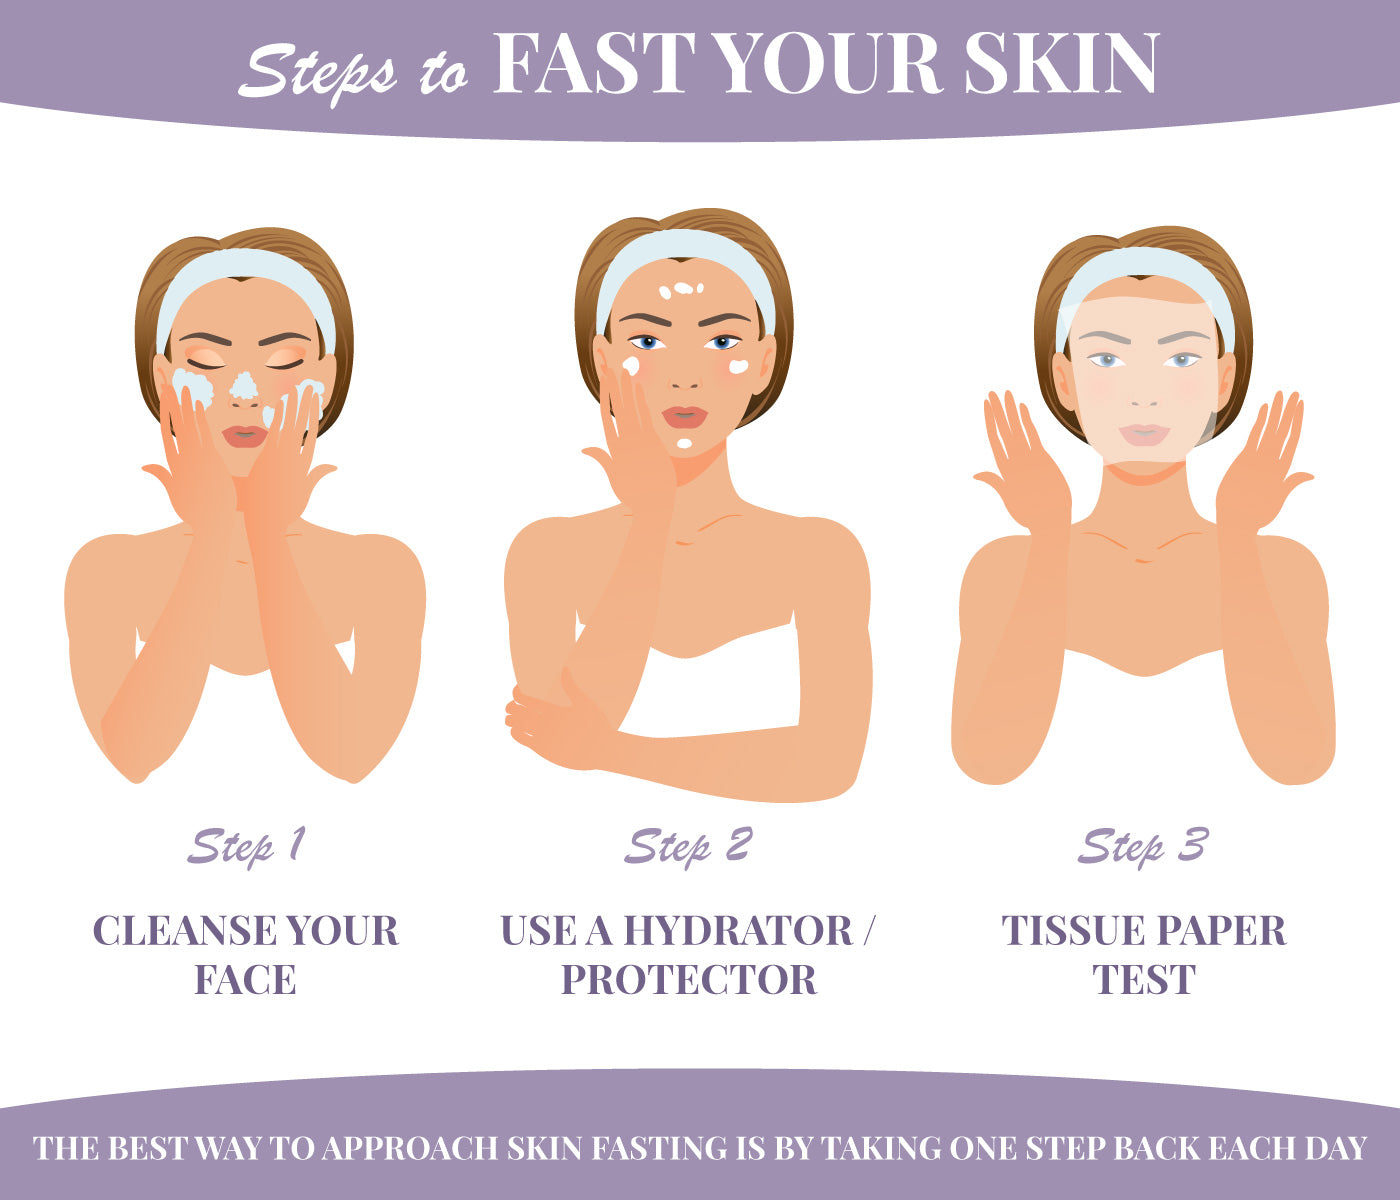 This is a image Steps on how to do Skin fasting on www.sublimelife.in